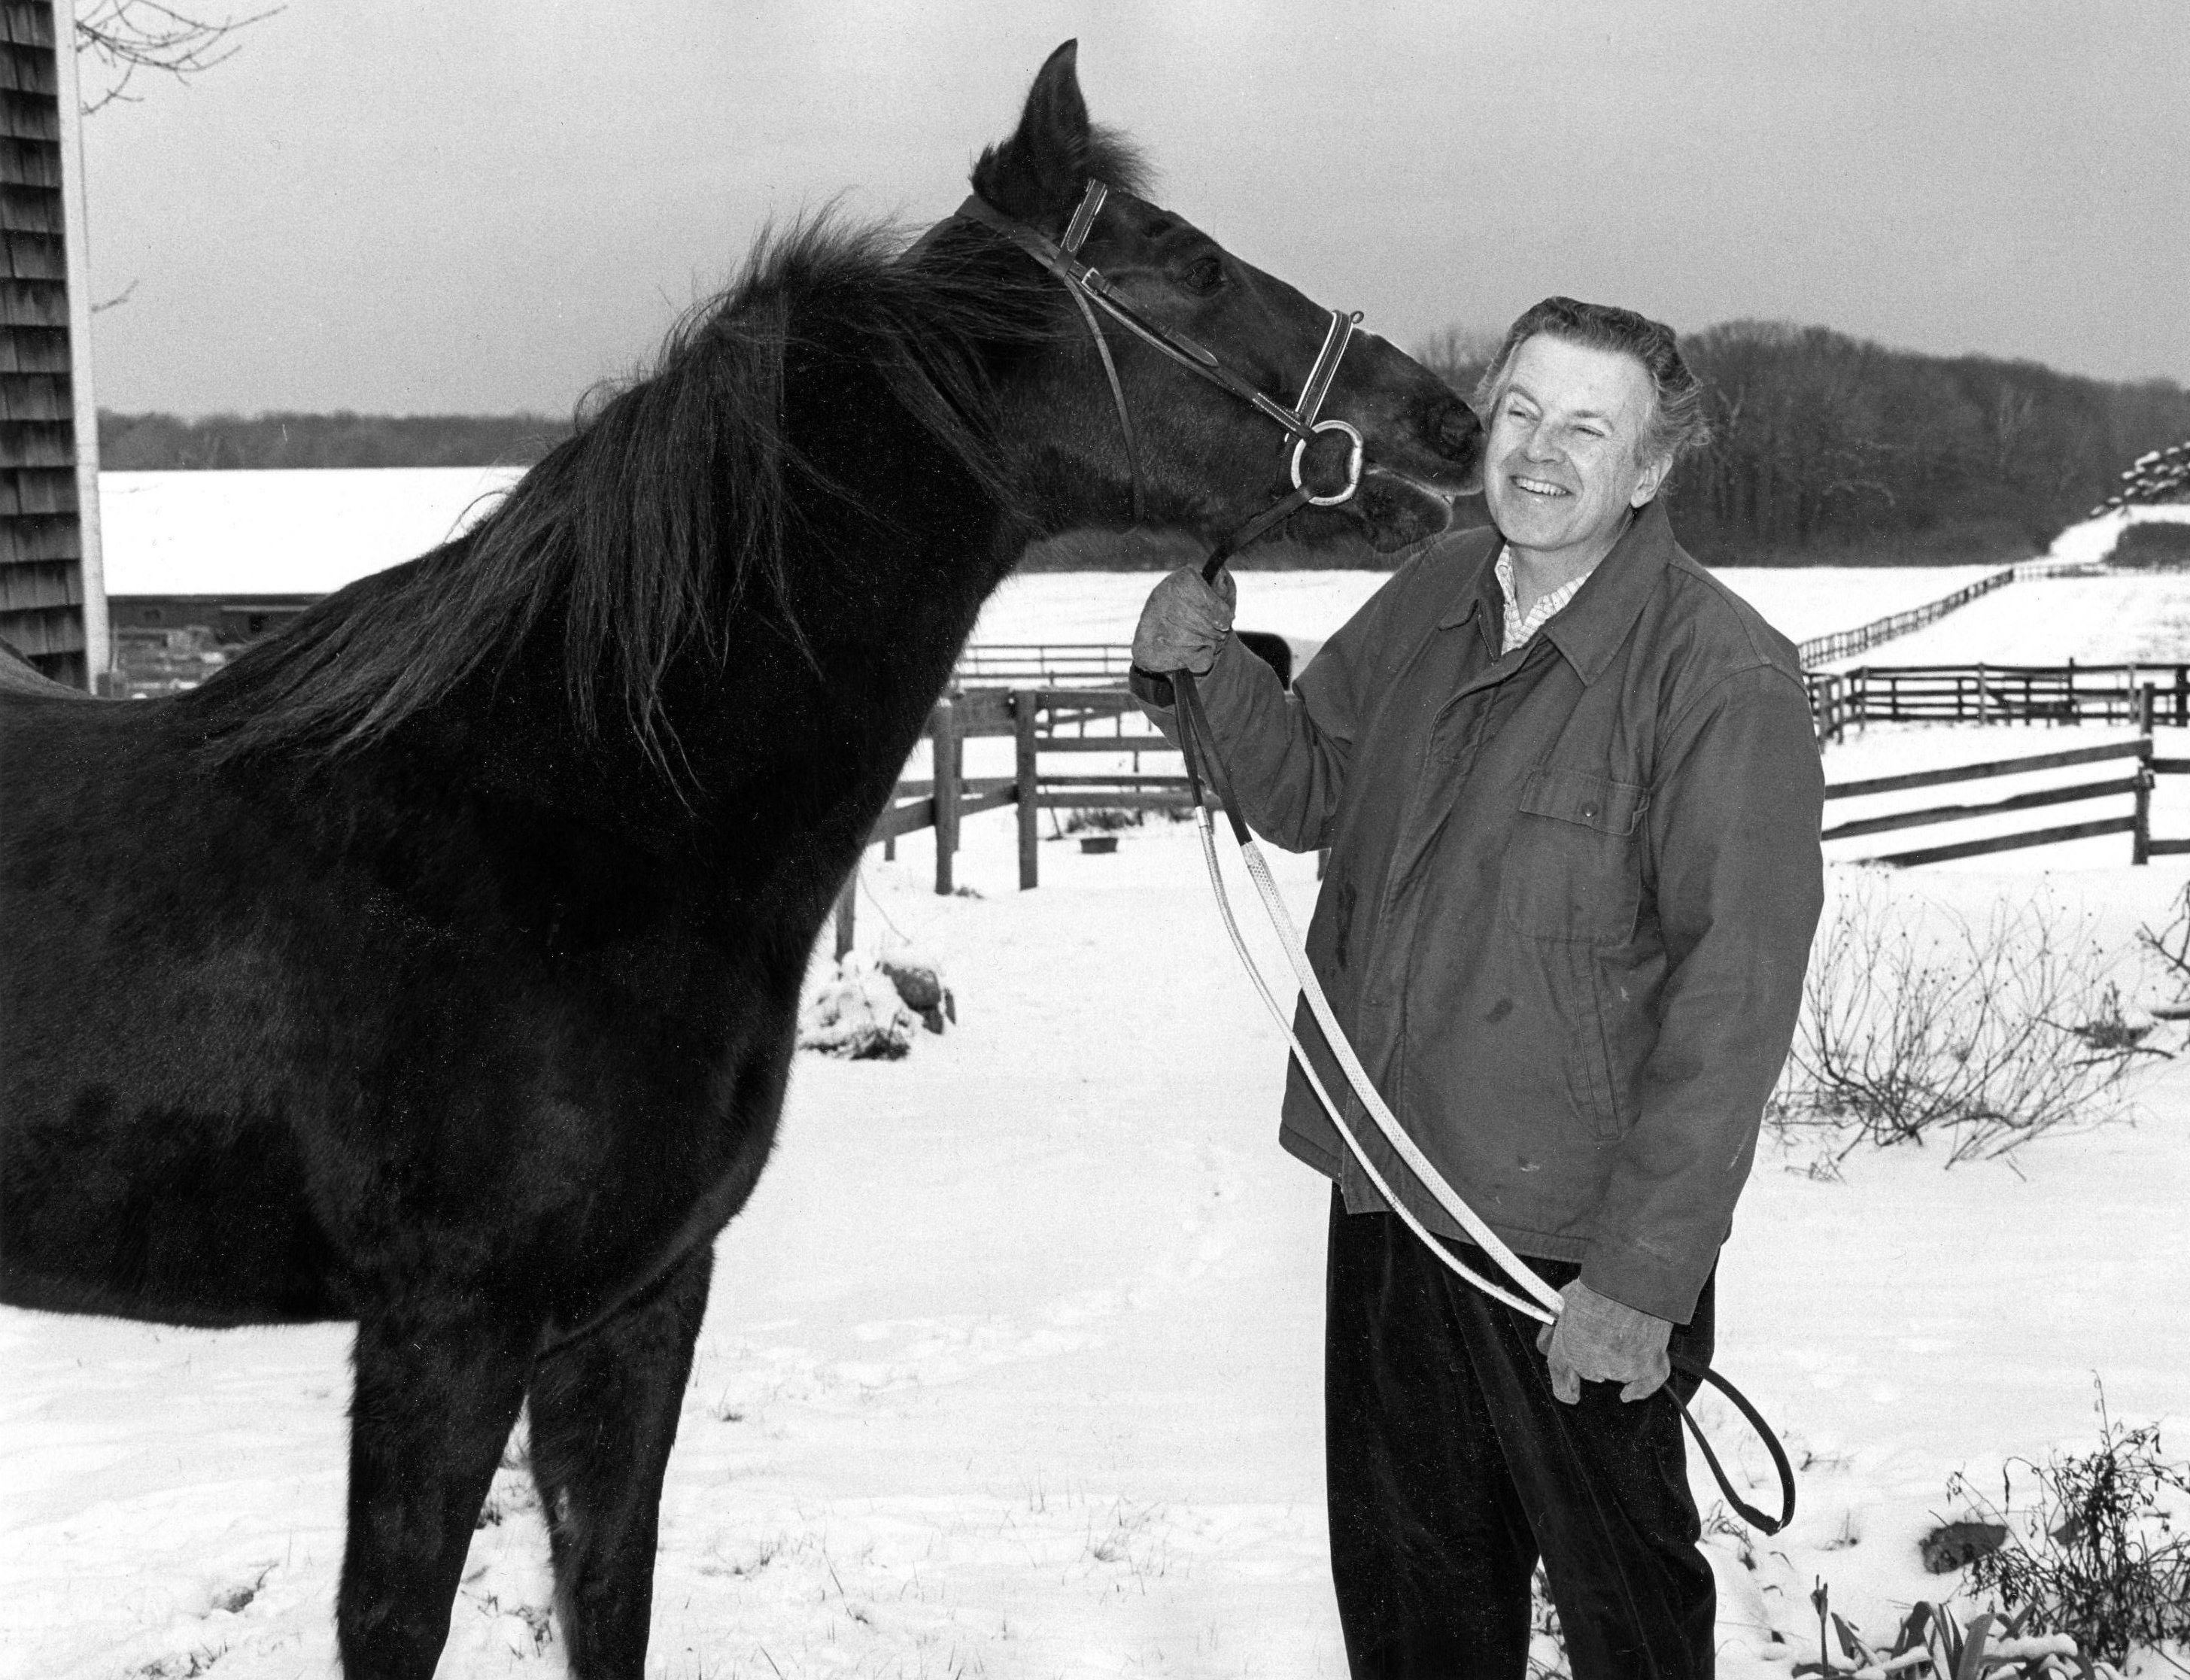 Water's grandfather, Norman, with horse